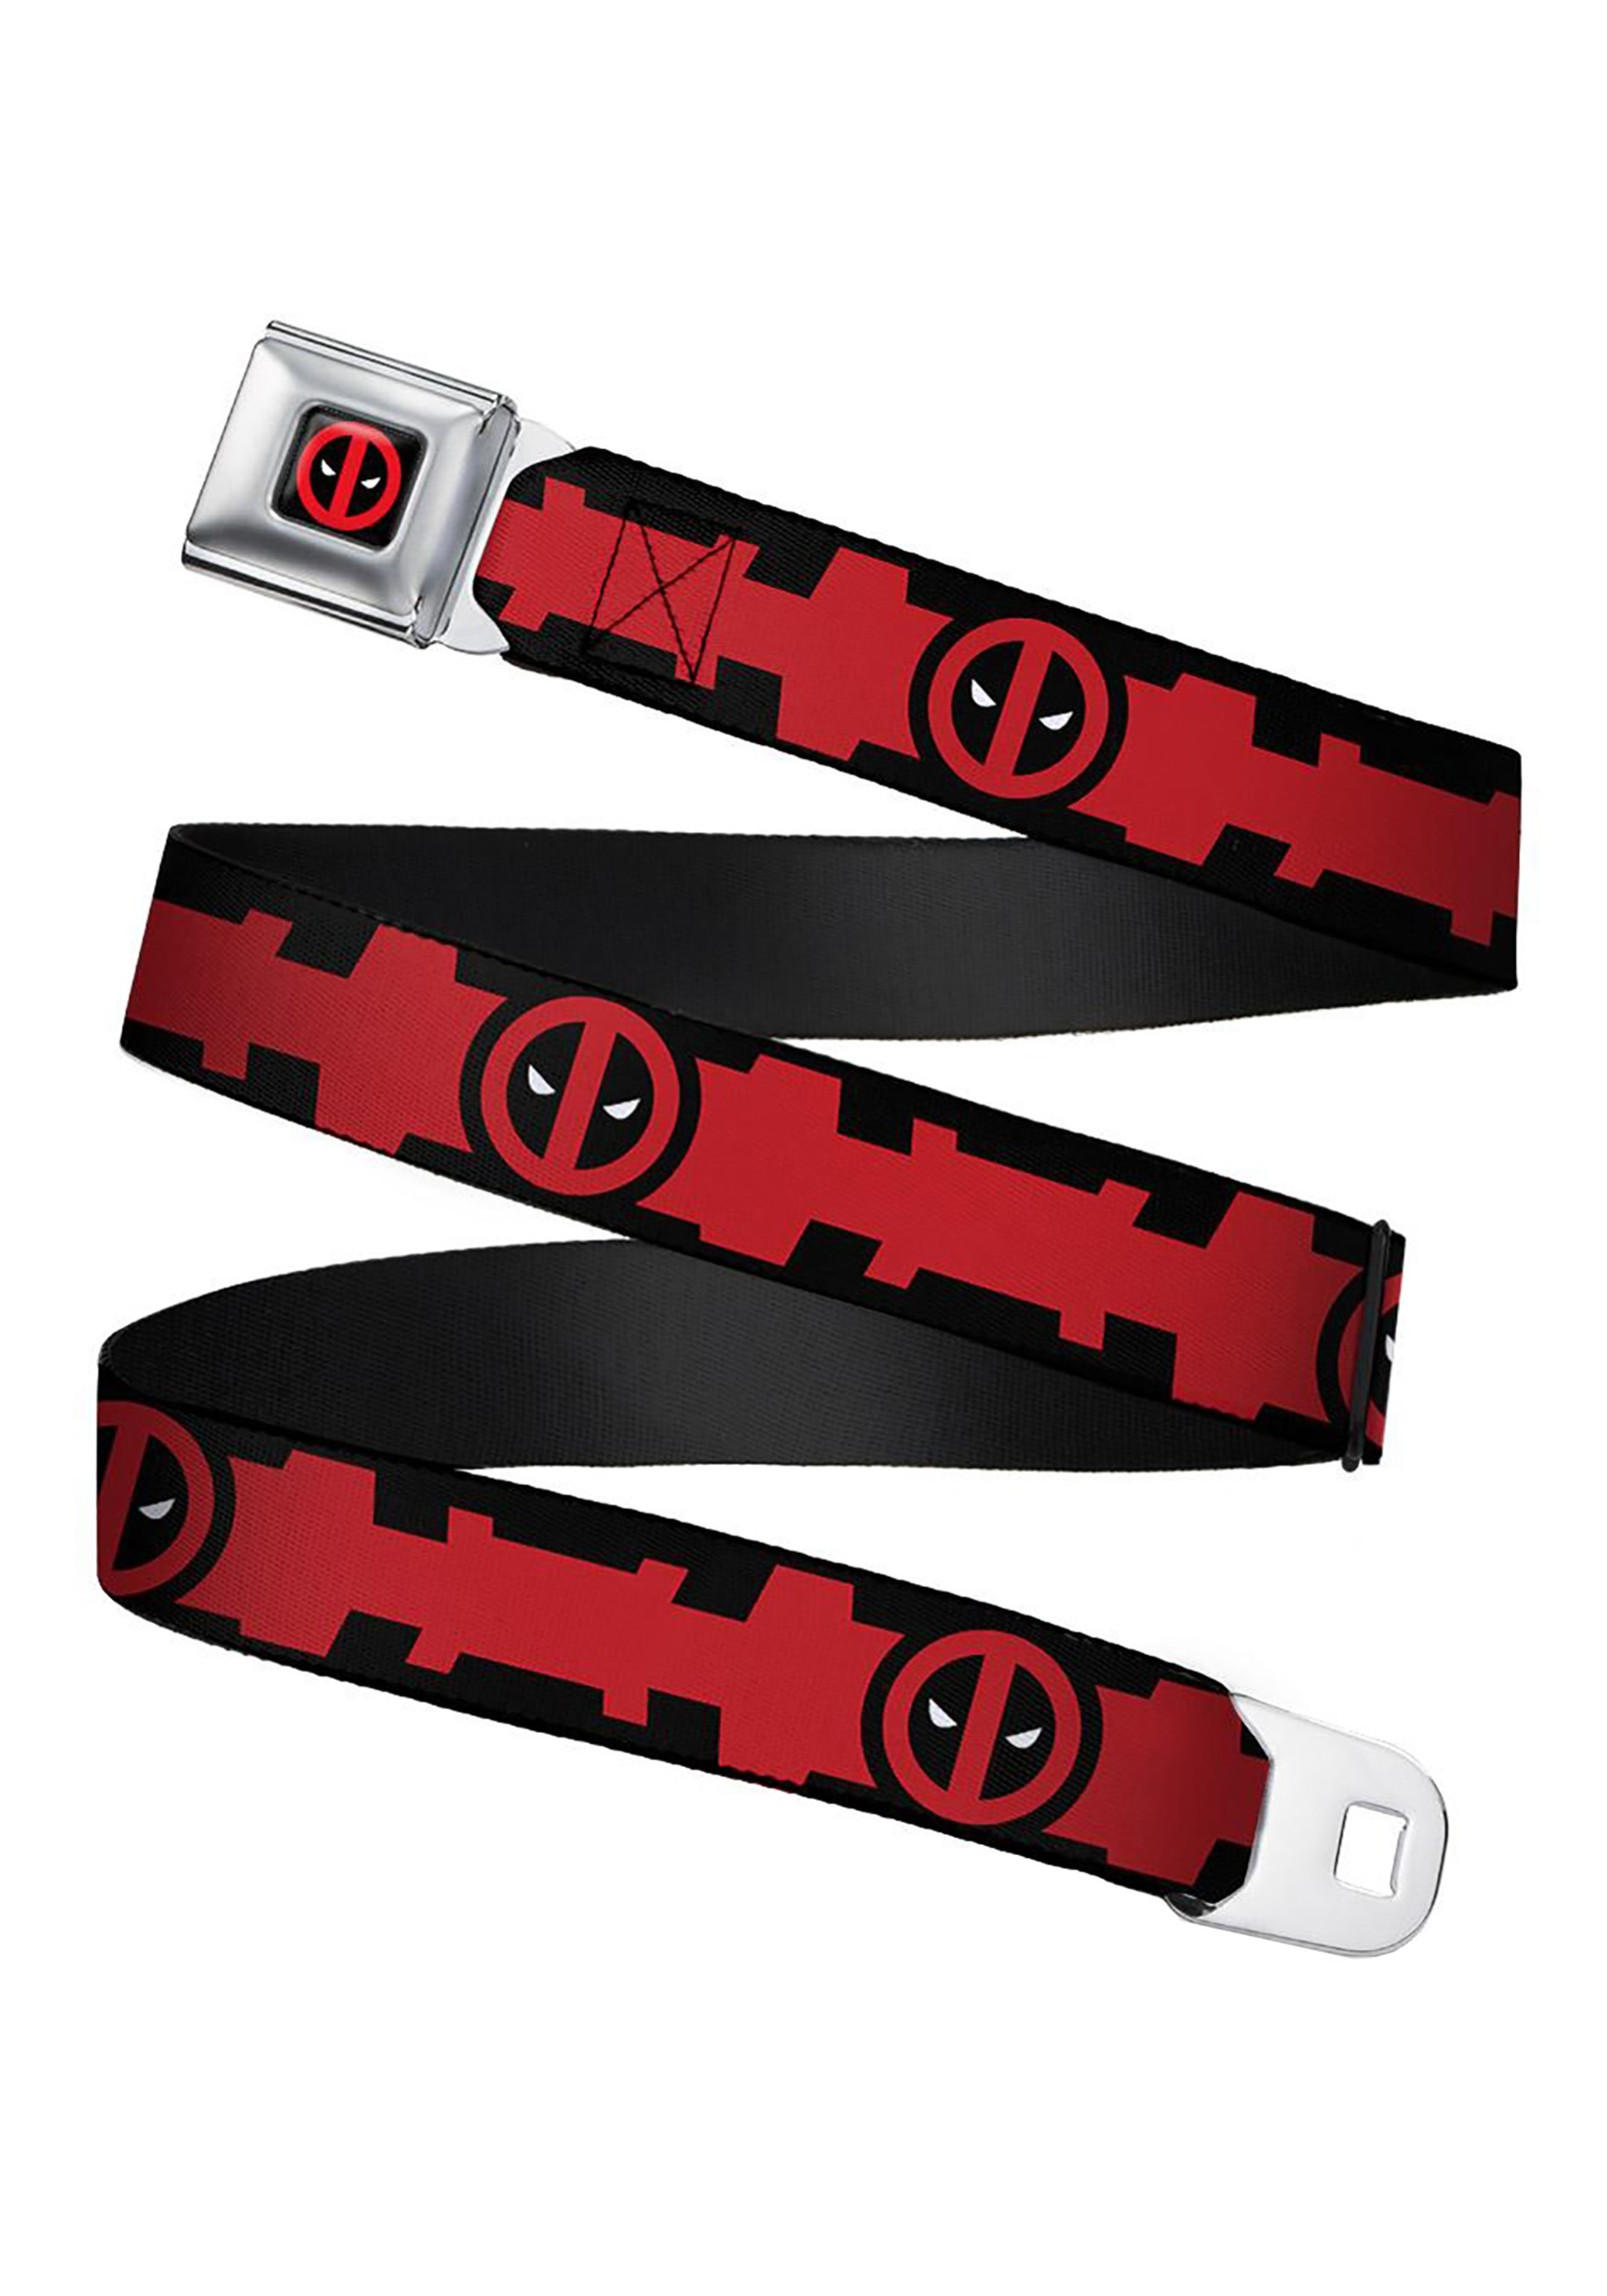 Deadpool_Utility_Belt_Seatbelt_Buckle_Belt